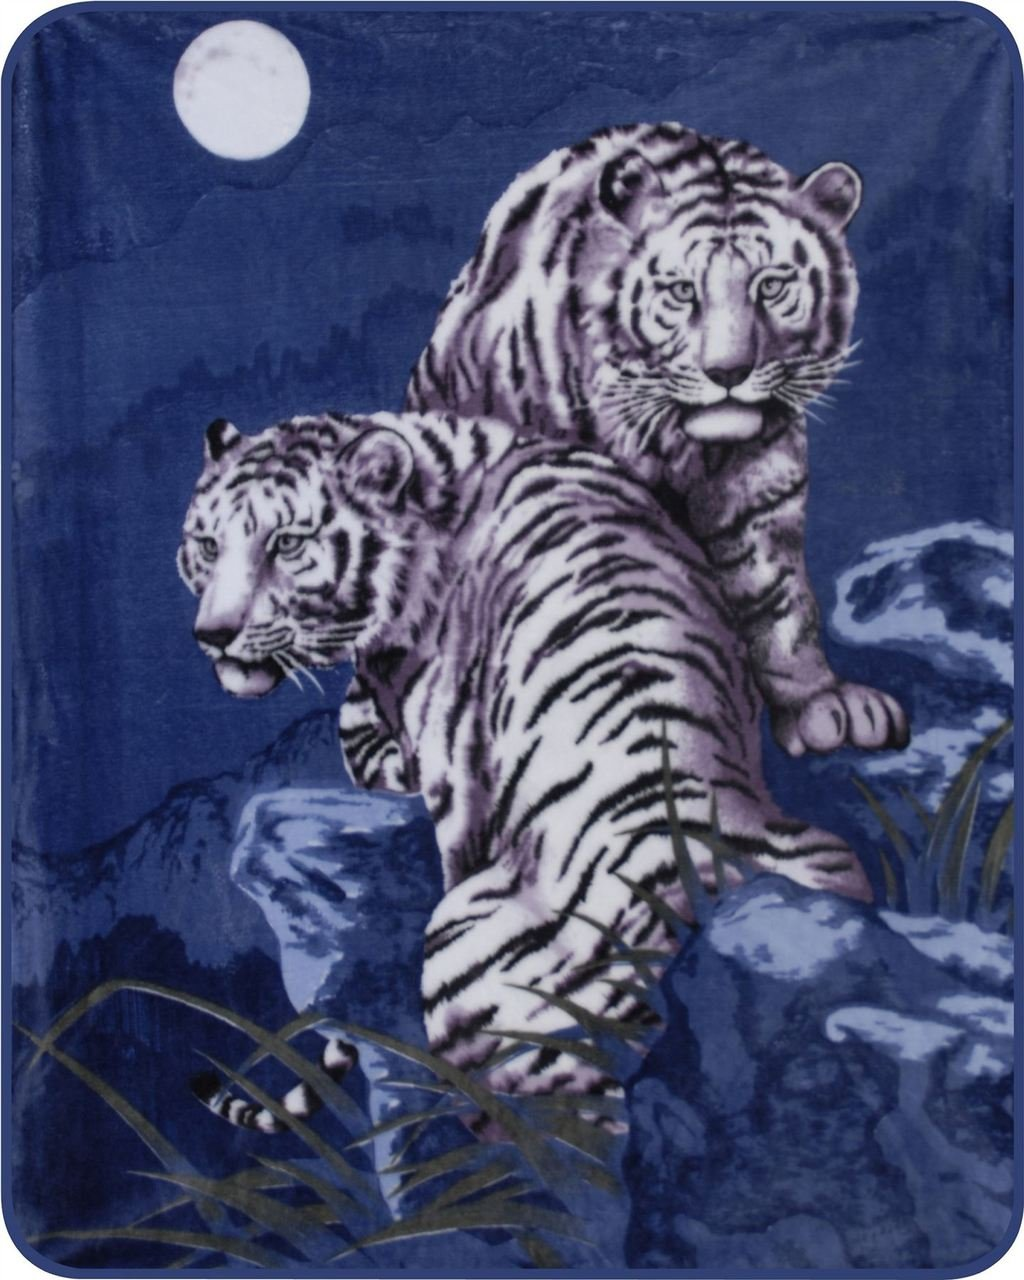 Medium Weight (Approx. 5lbs) White Tigers Blanket Polyester Mink Blanket